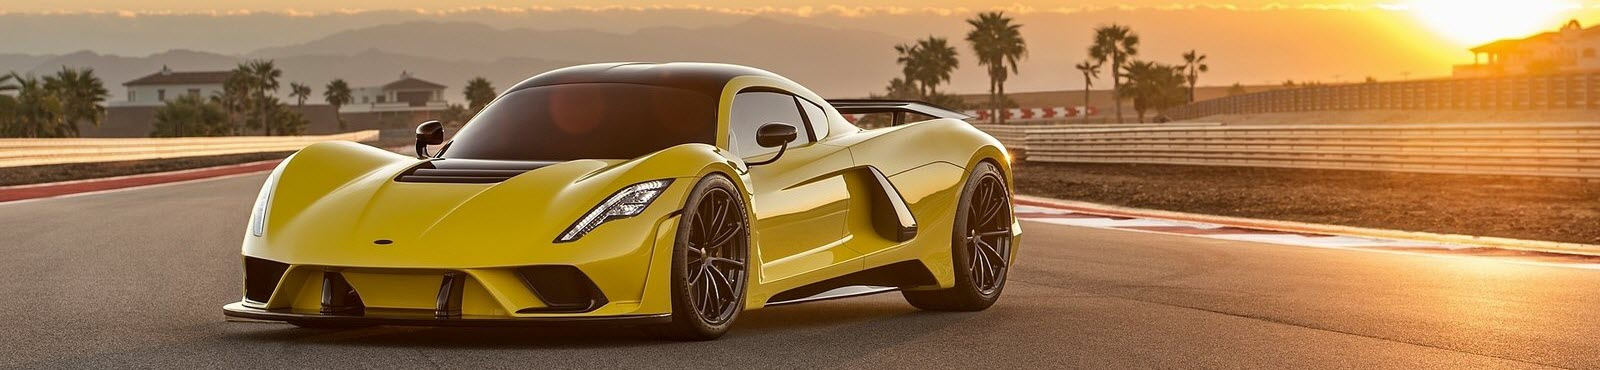 Venom F5 | 311 MPH Top Speed Hypercar from Hennessey